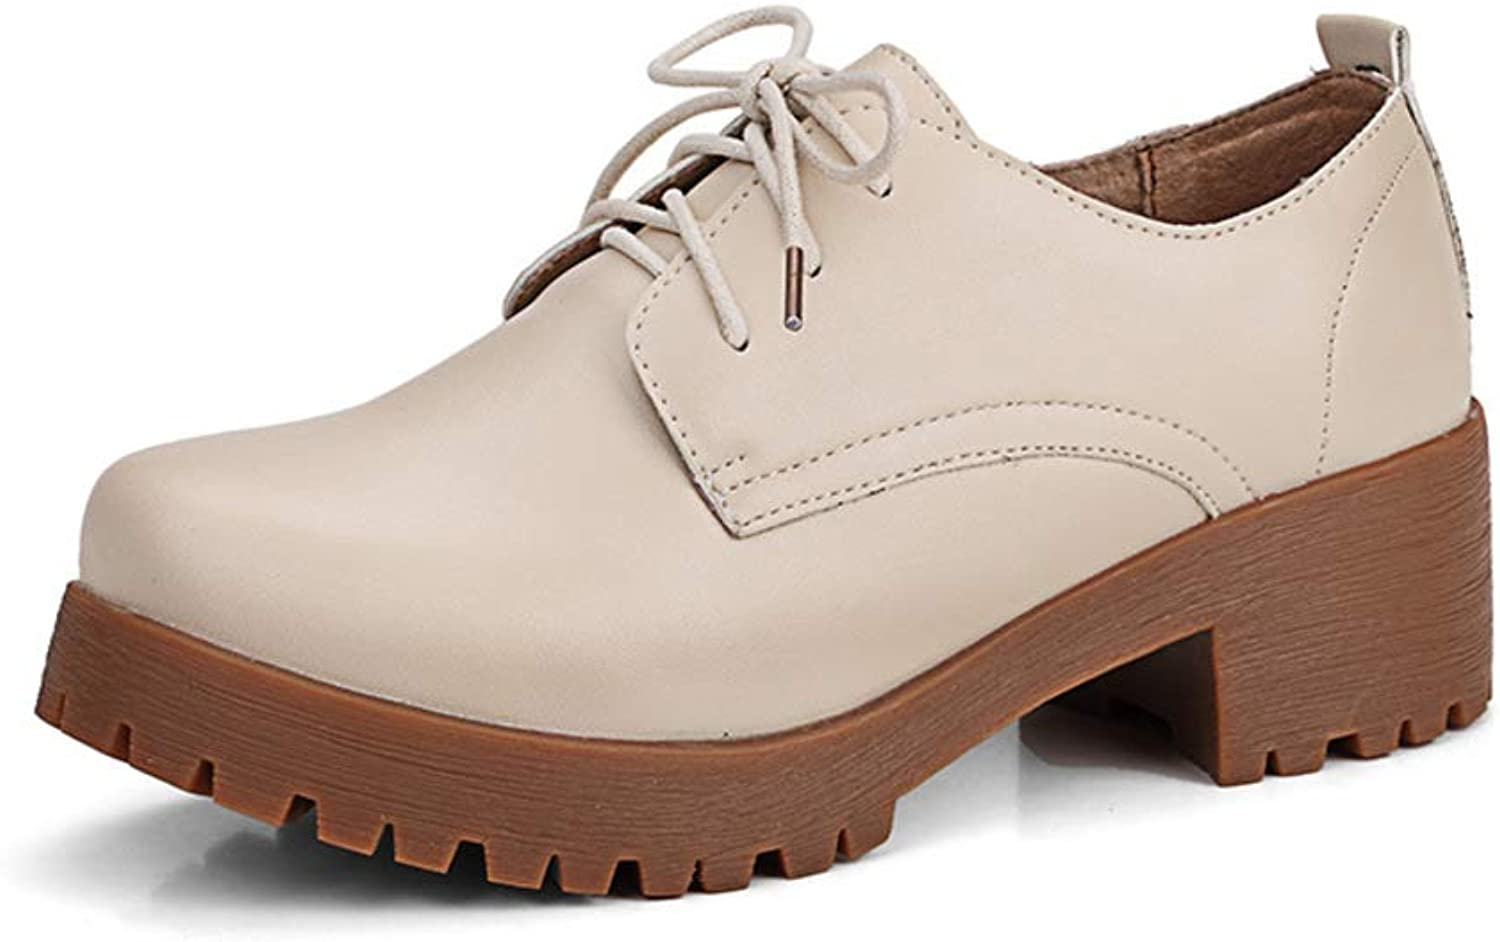 Flats Women's Casual shoes, Winter Warm Lace-up Wedges